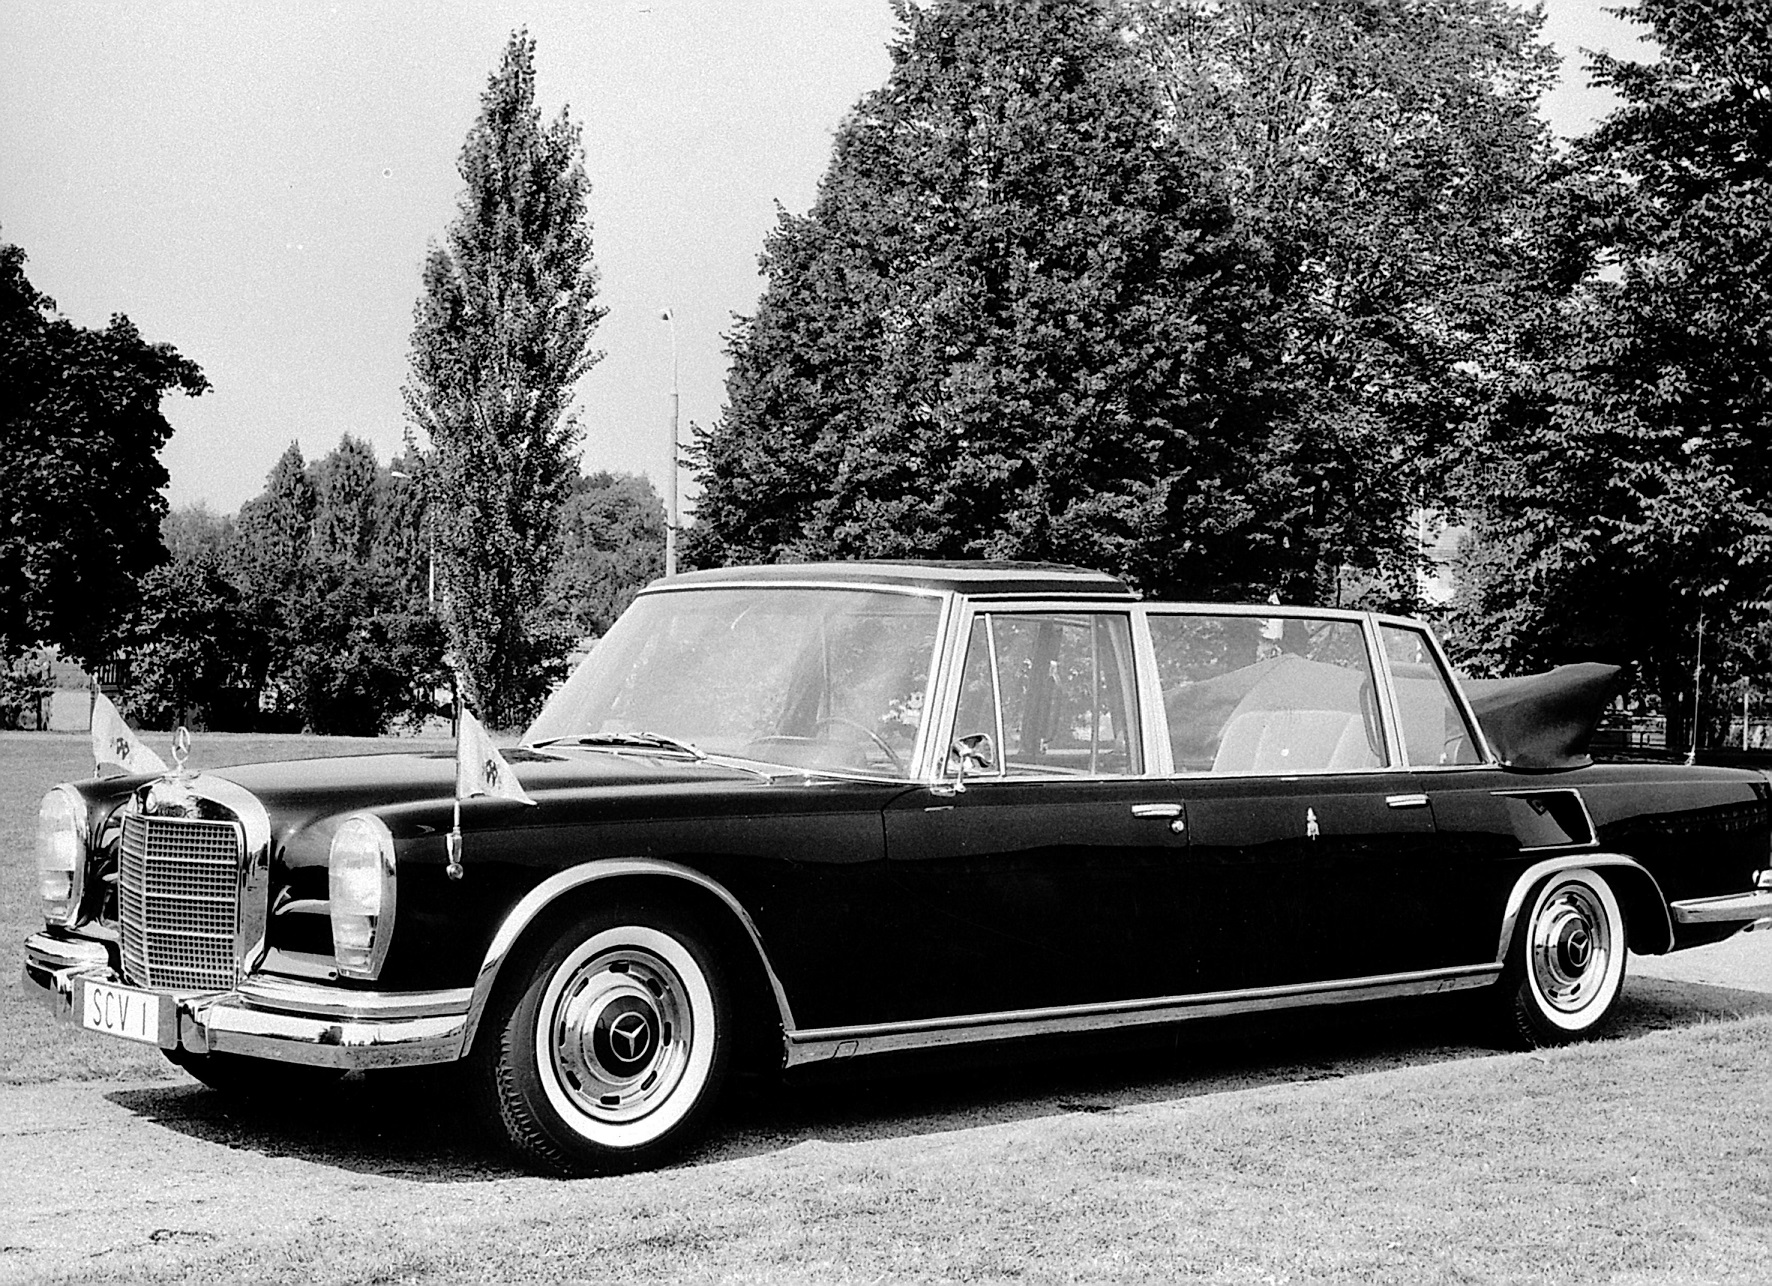 mercedes-benz 600 pullman 1965 papa paulo vi carro do papa